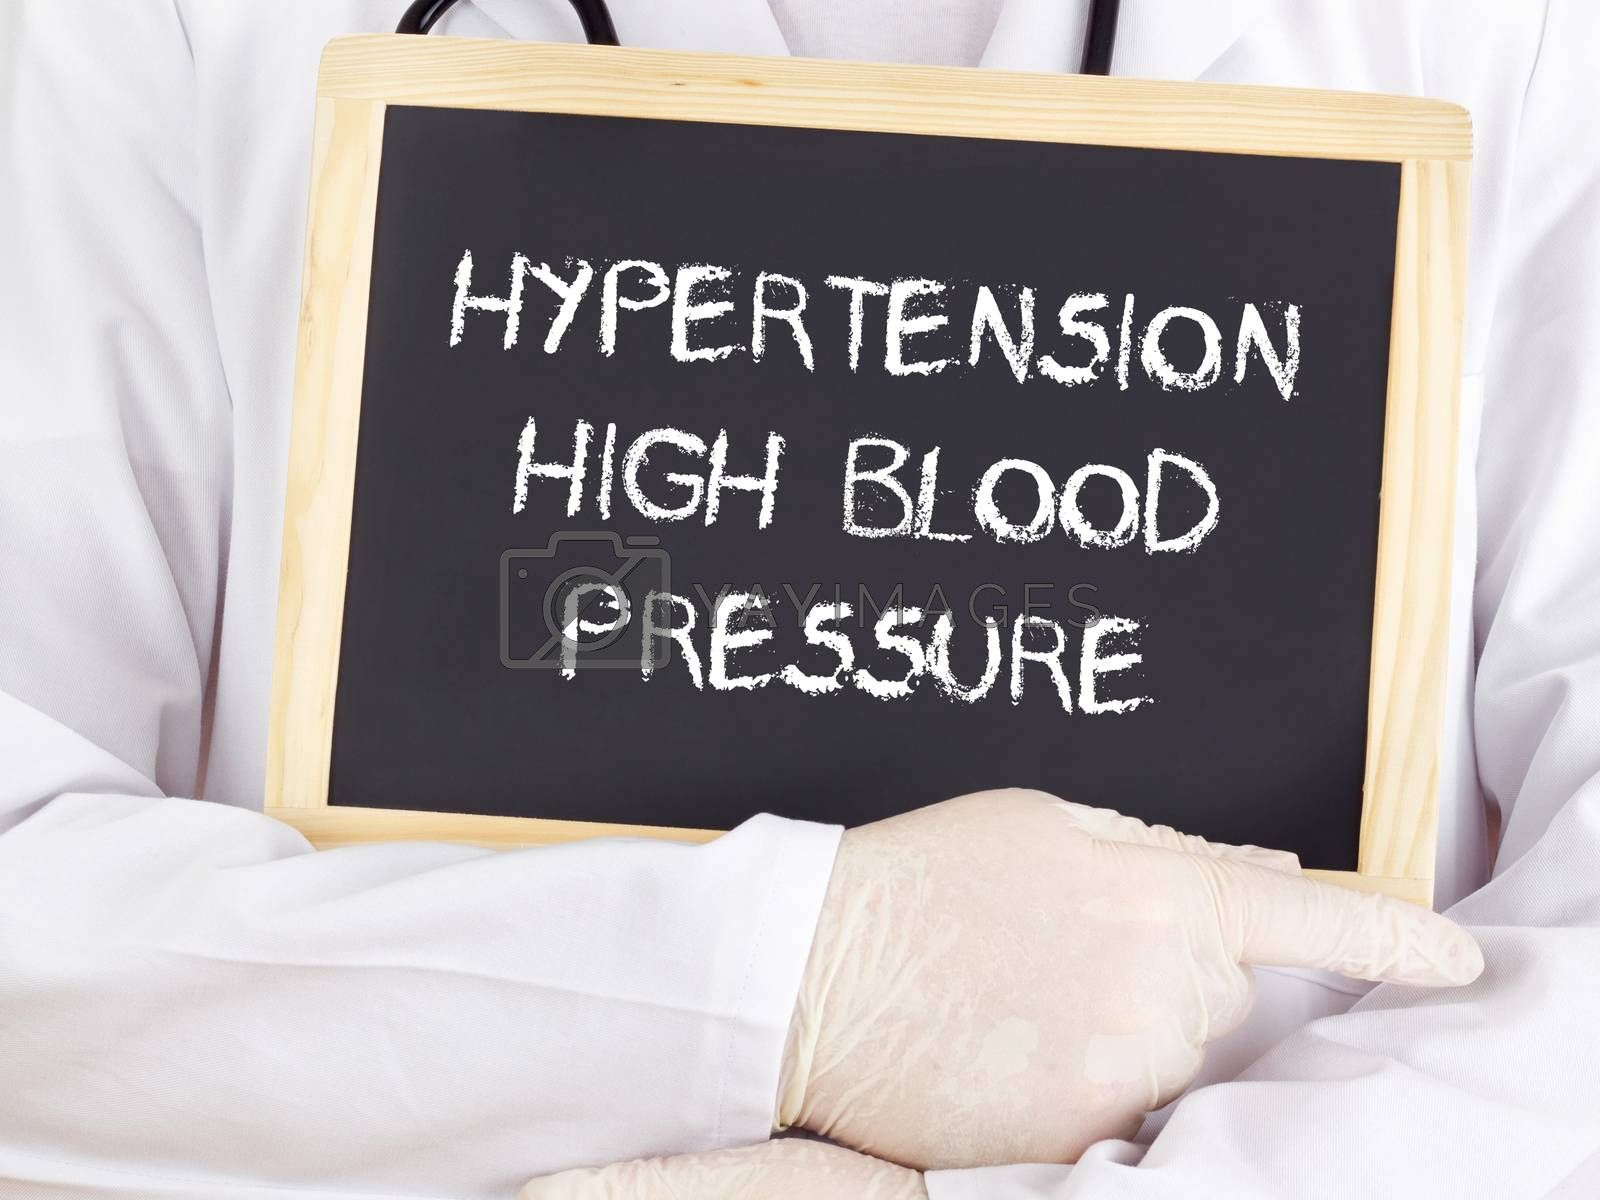 Royalty free image of Doctor shows information: hypertension high blood pressure by gwolters